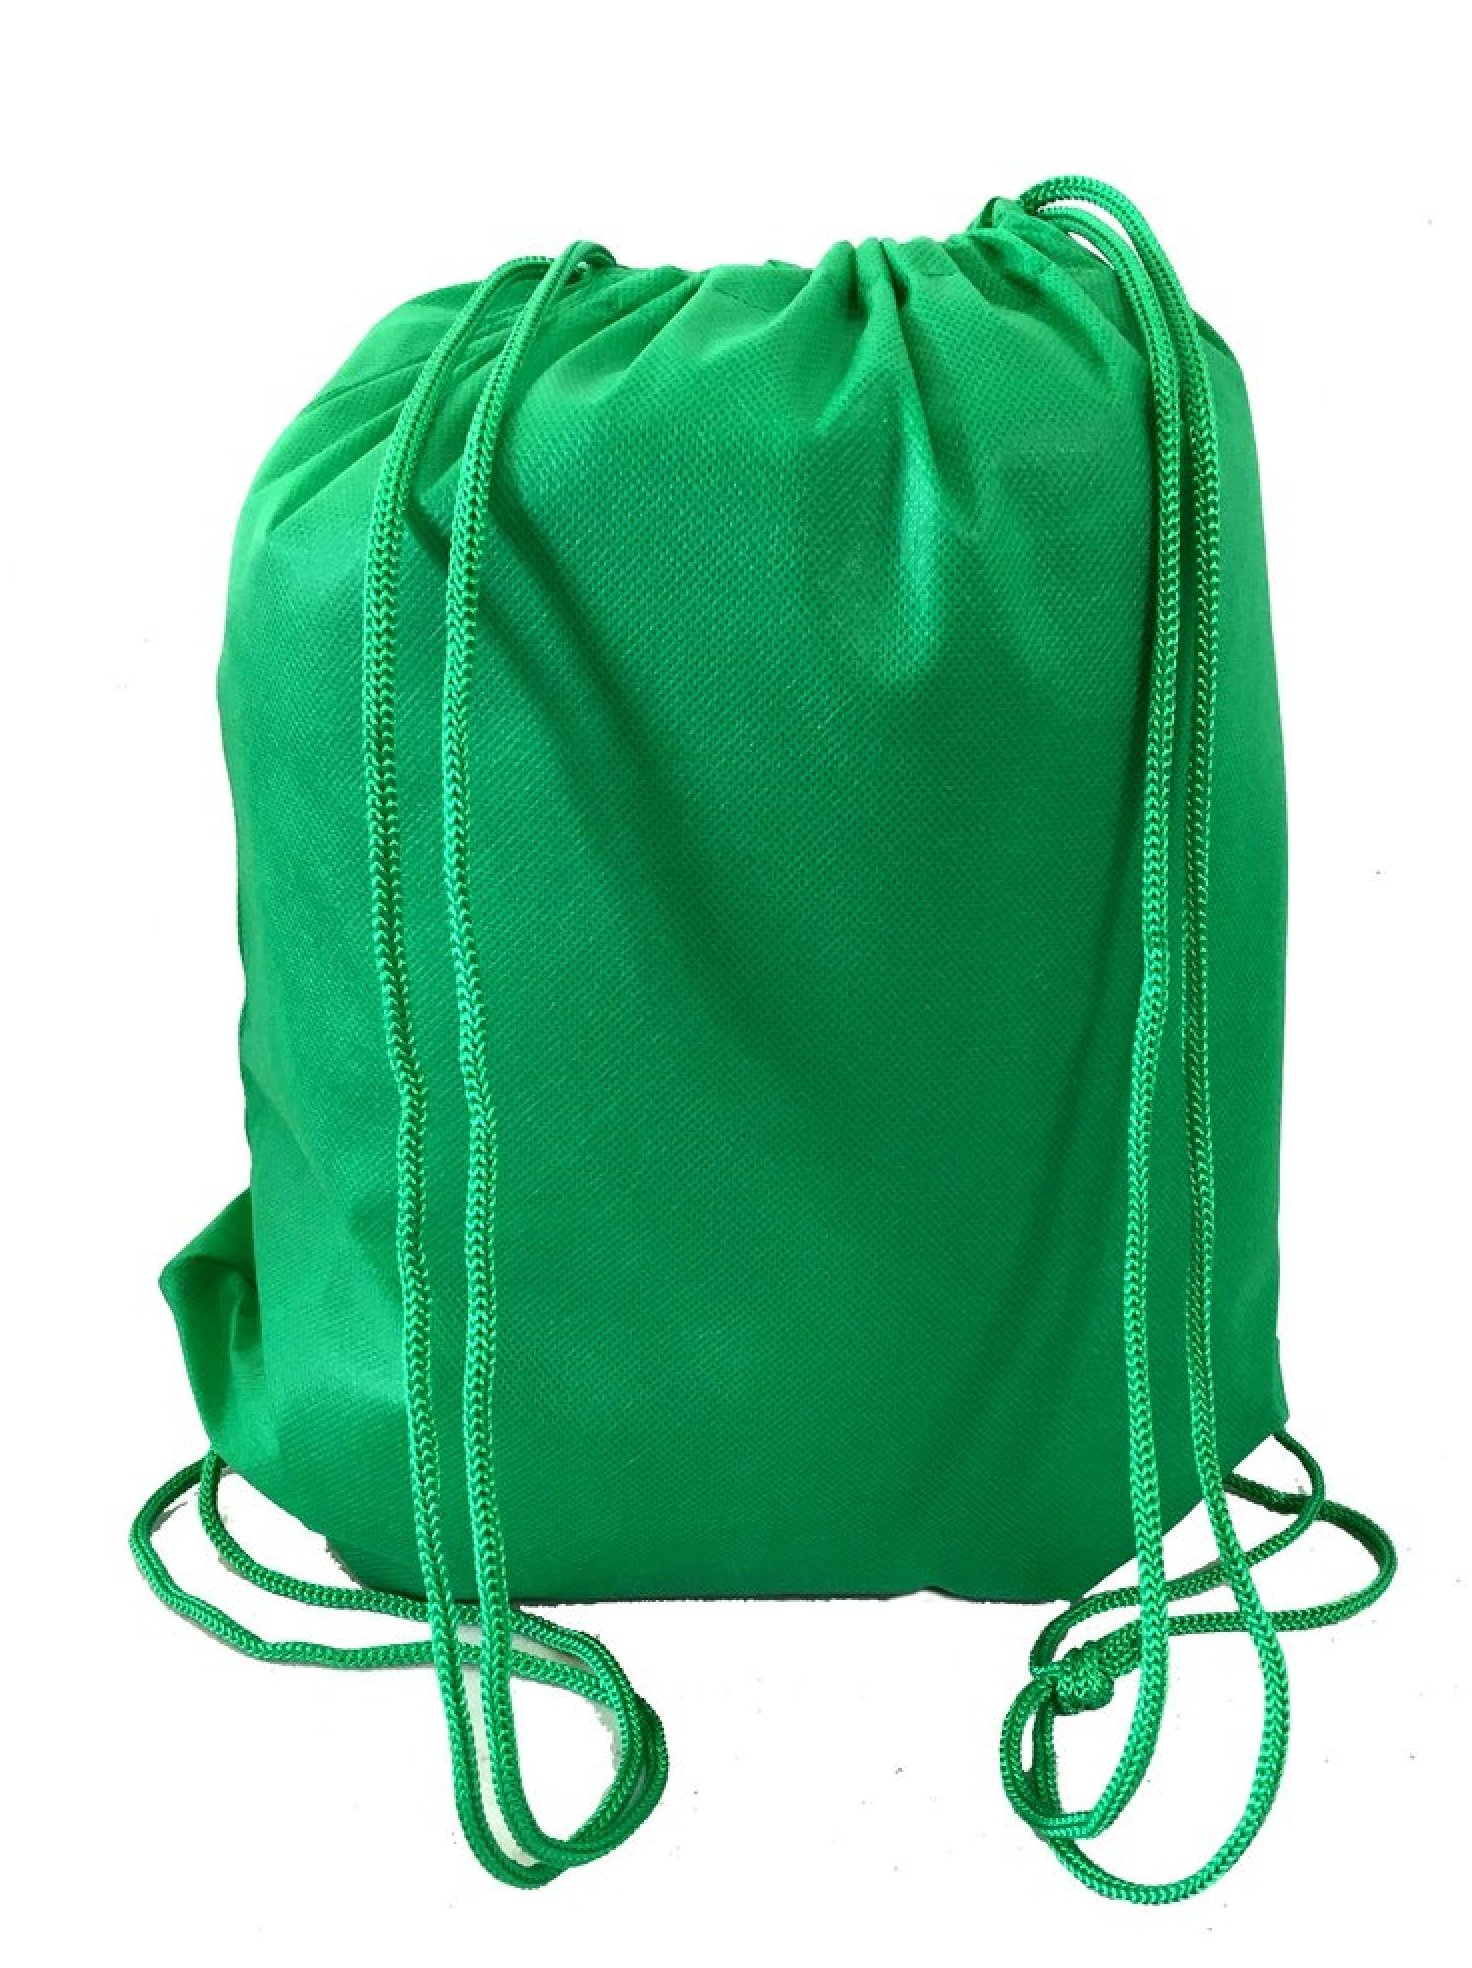 Super Value Pack- 200 Pack Mix Color Drawstring Bags, Small Size Junior Cinch Packs, Non-Woven Backpack (Kelly Green)